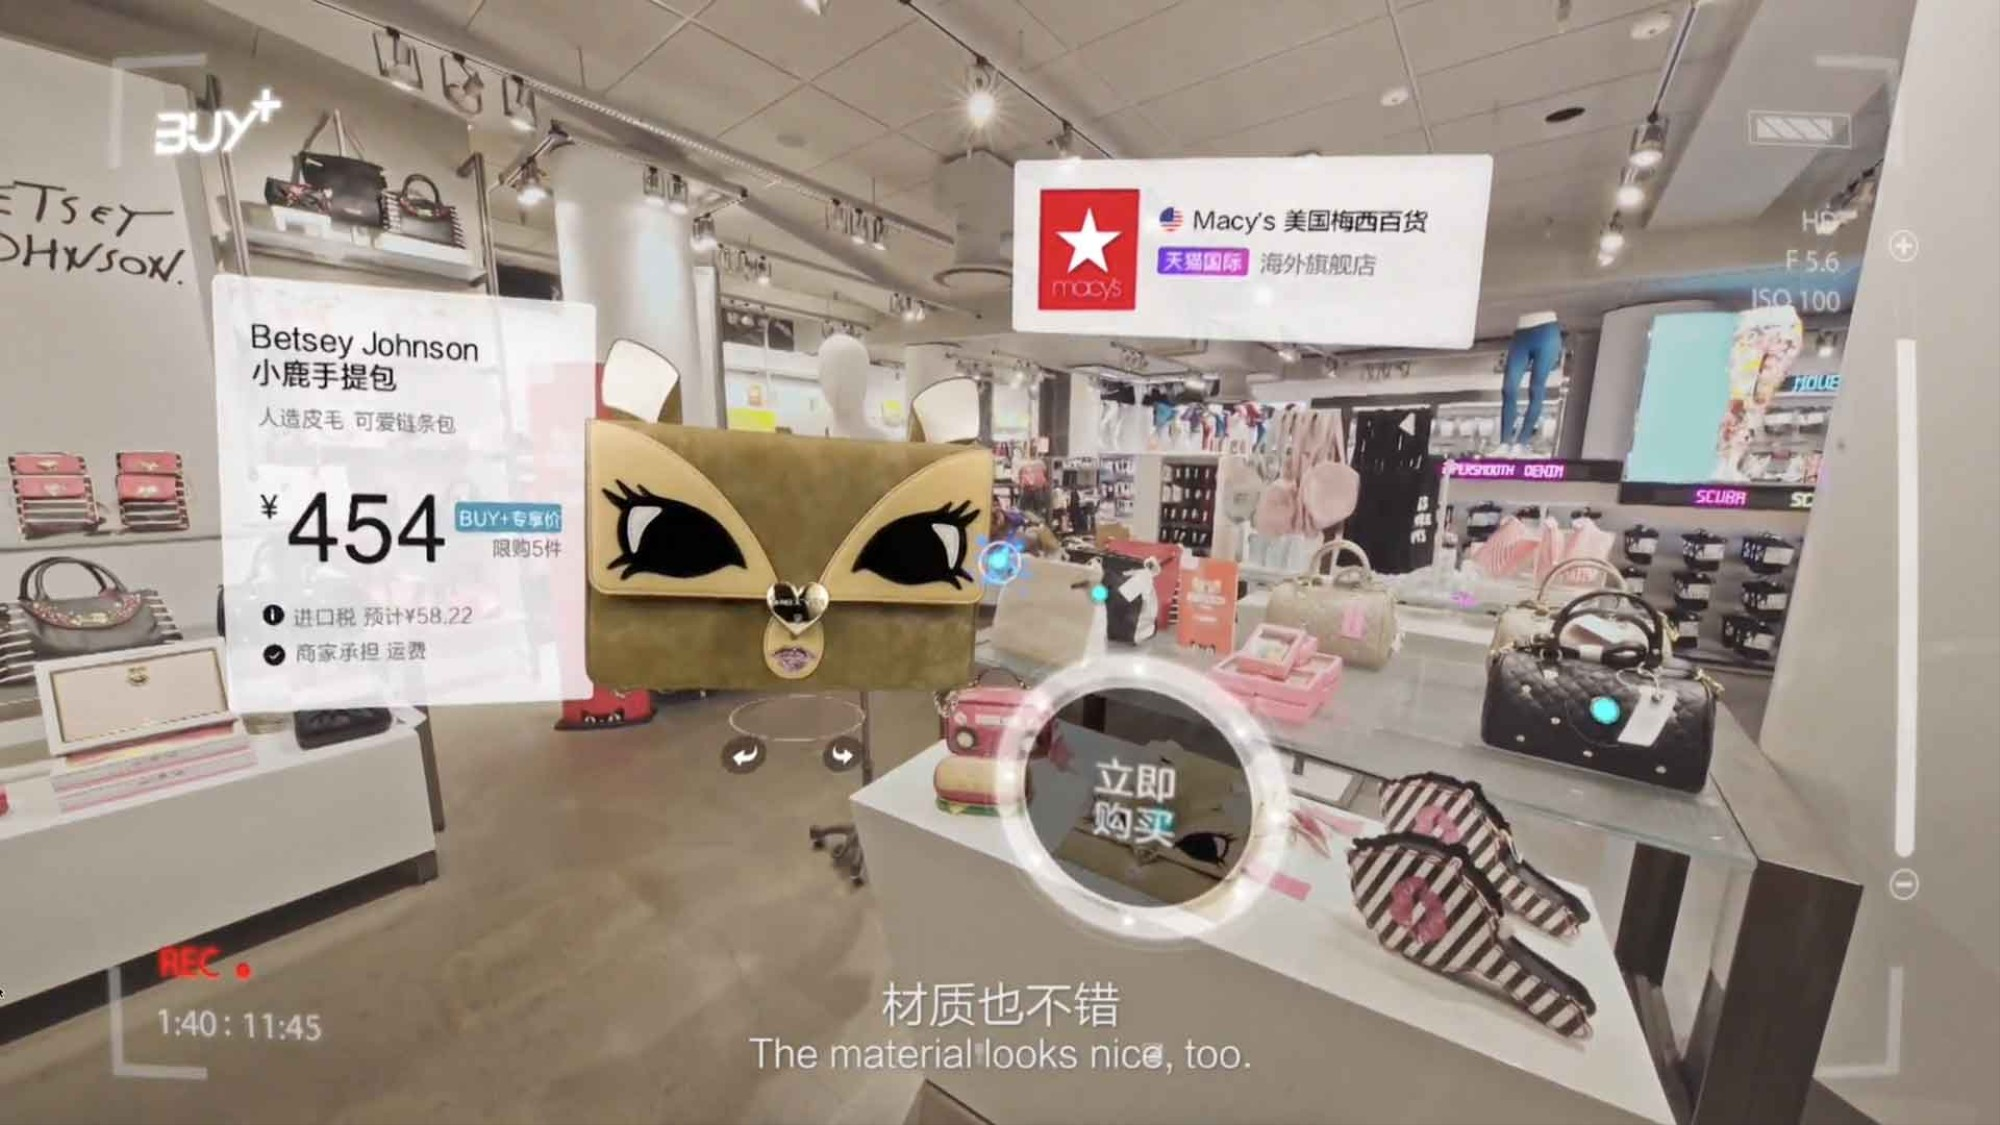 The strange, lonely experience of shopping in Alibaba's VR